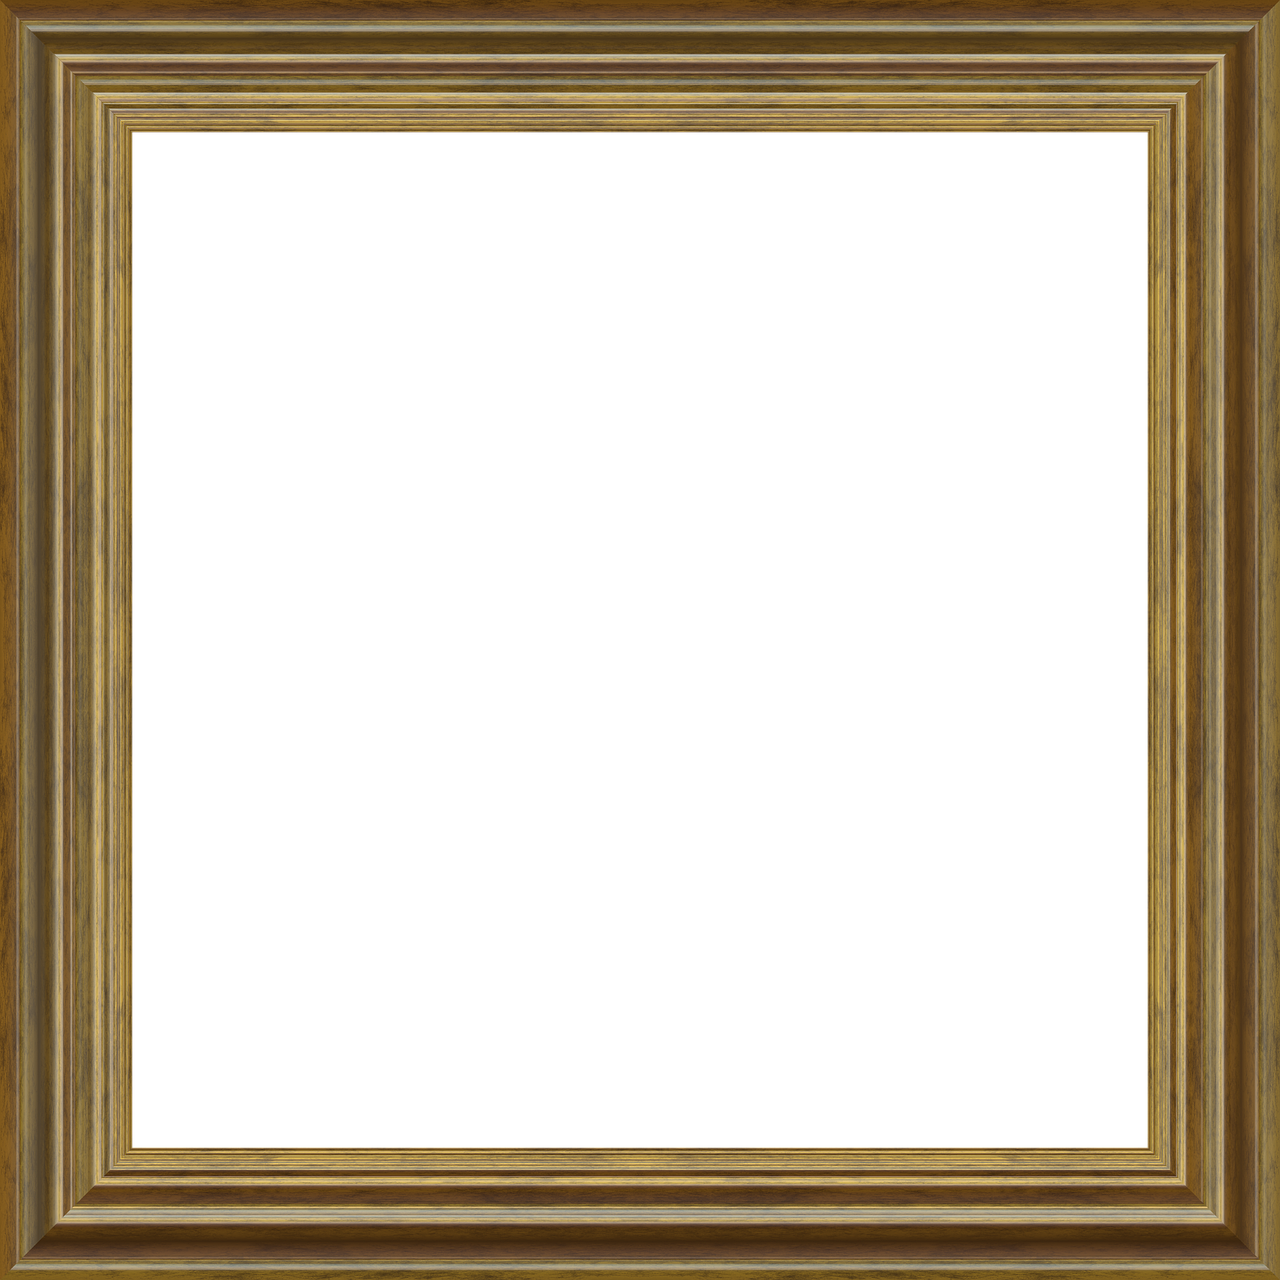 Frugal Gifts: Picture Frames